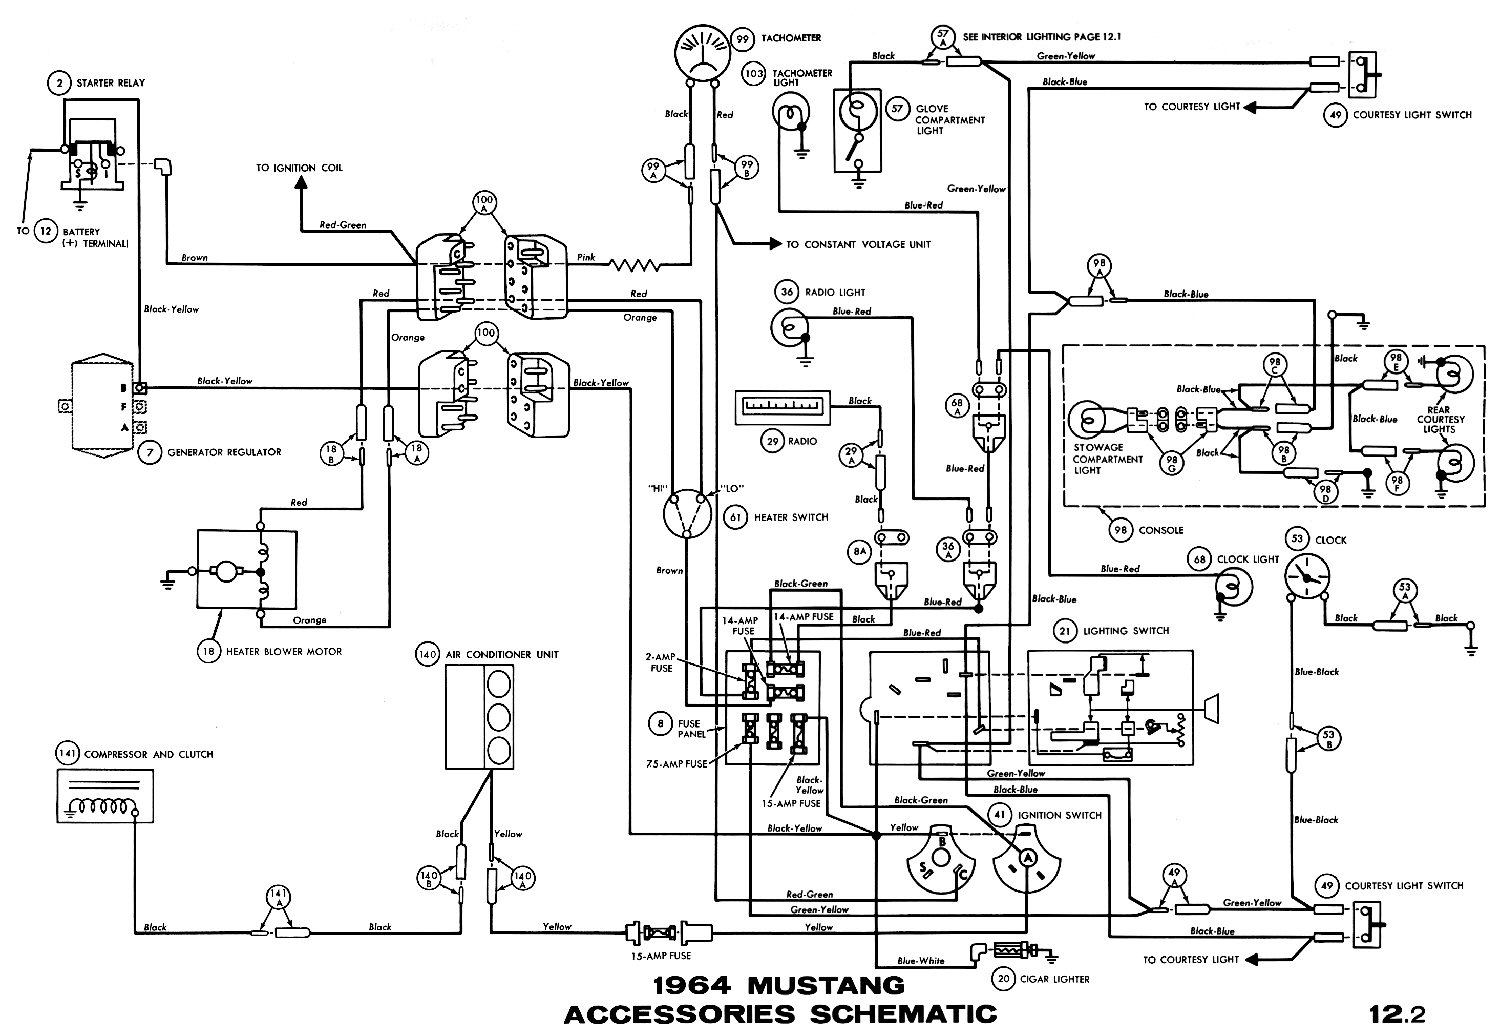 1964m 2015 mustang wiring diagram schematic mustang 2015 \u2022 free wiring 1965 ford mustang wiring diagrams at crackthecode.co